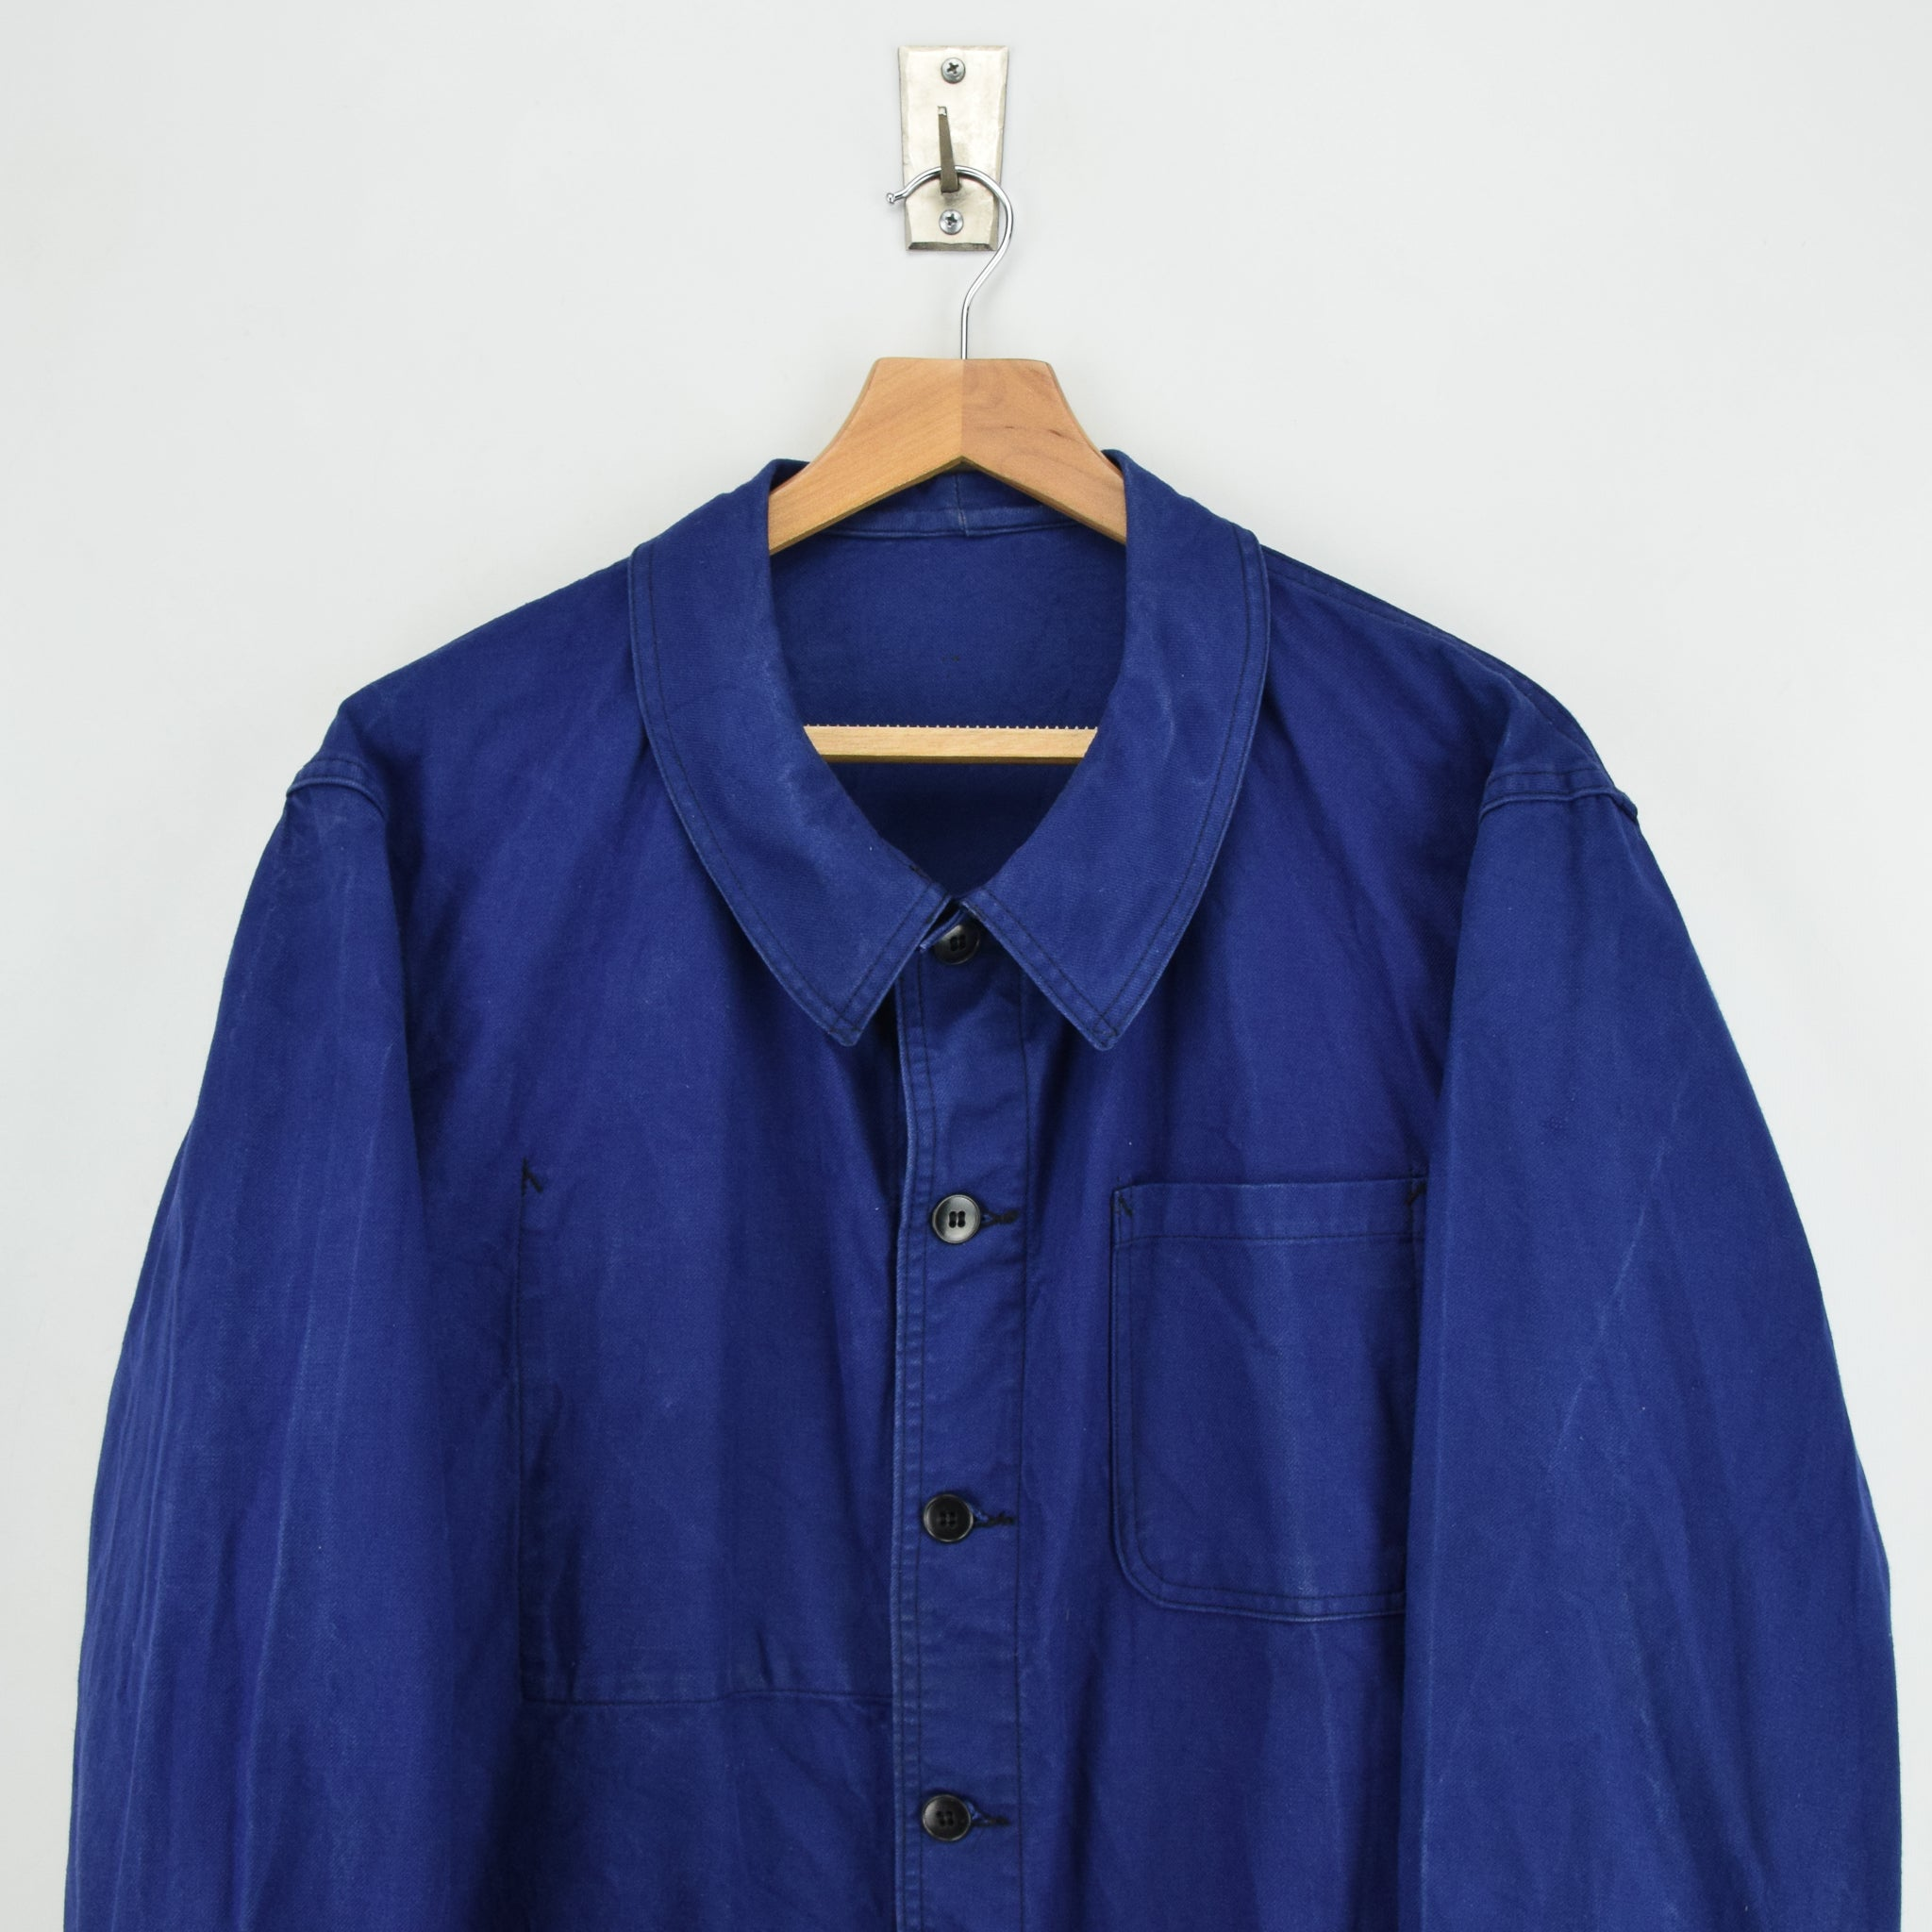 Vintage Indigo Blue French Worker Sanforized Cotton Chore Jacket L chest